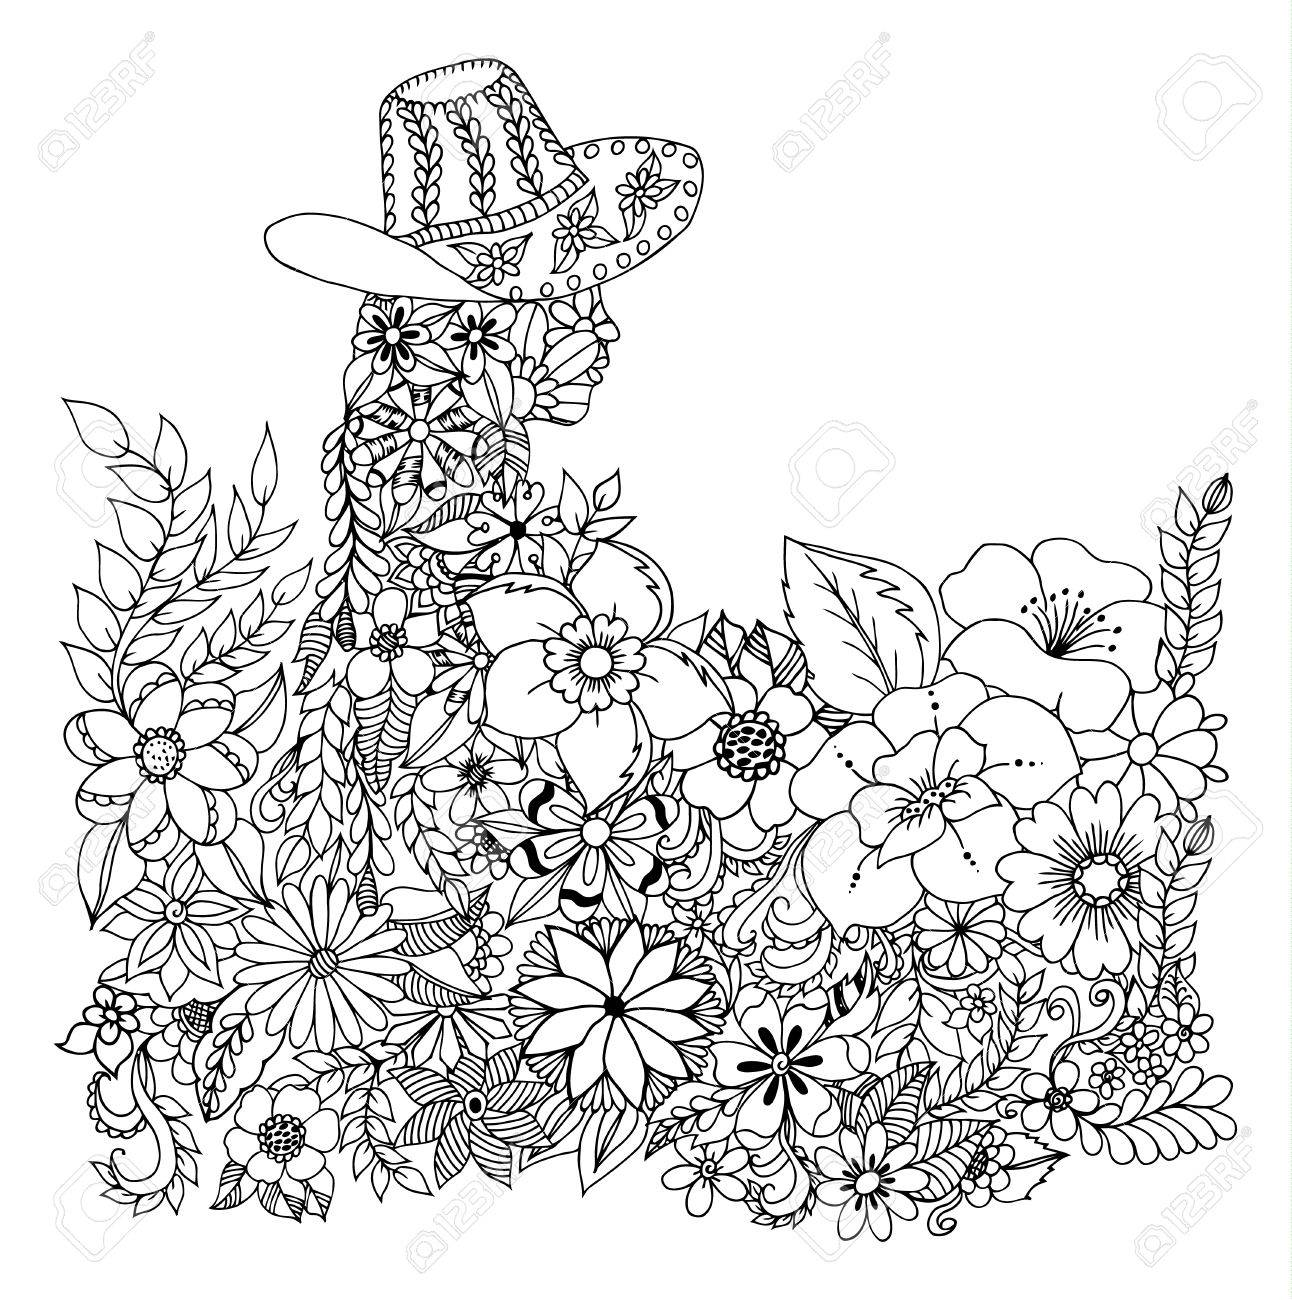 Vector illustration zentangl, silhouette of a girl with hat from..